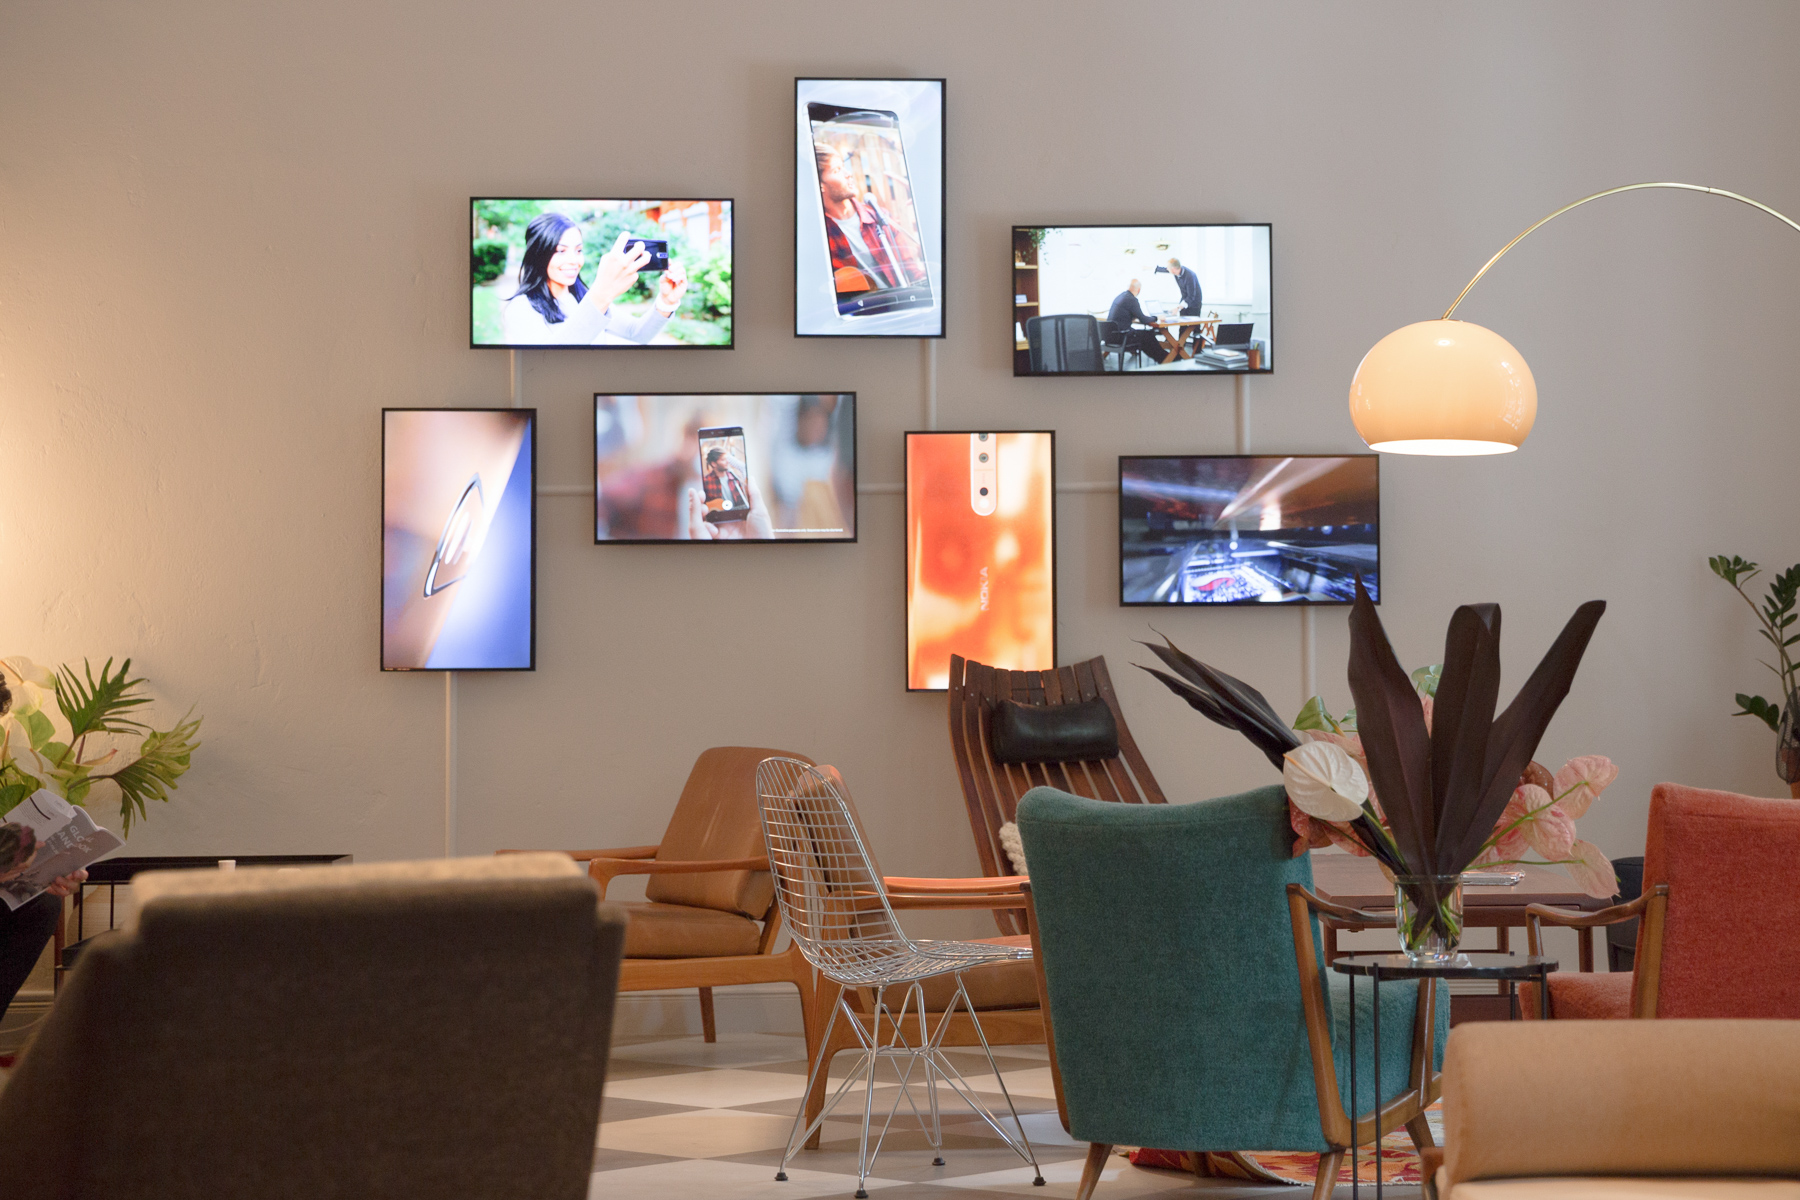 Hikaru Funnell - Capture Collect Photography - HMD Global x Nokia - Berlin - Interior Photography.jpg